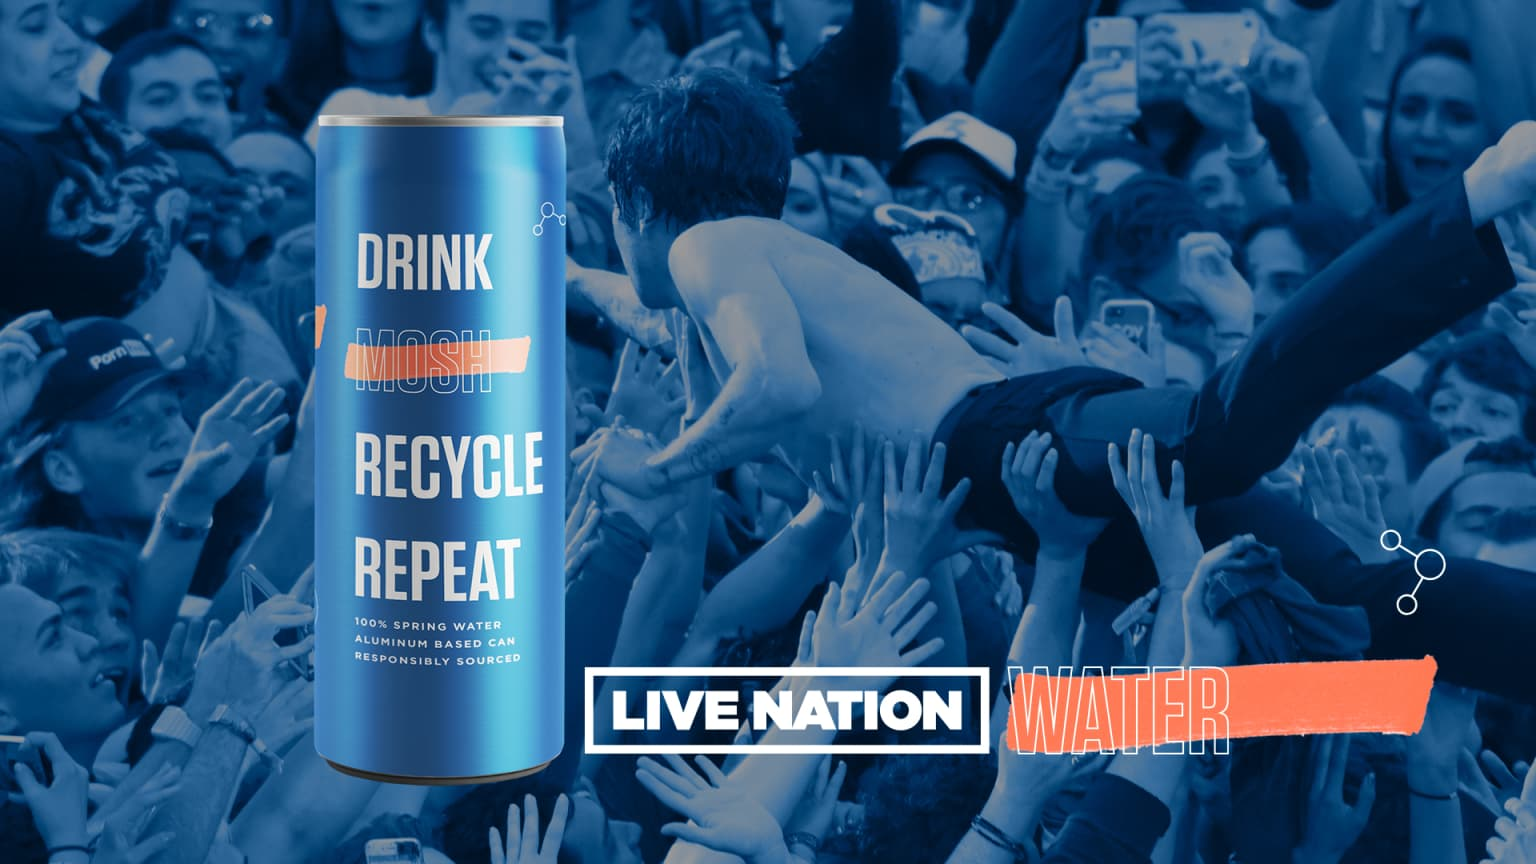 Live Nation Water